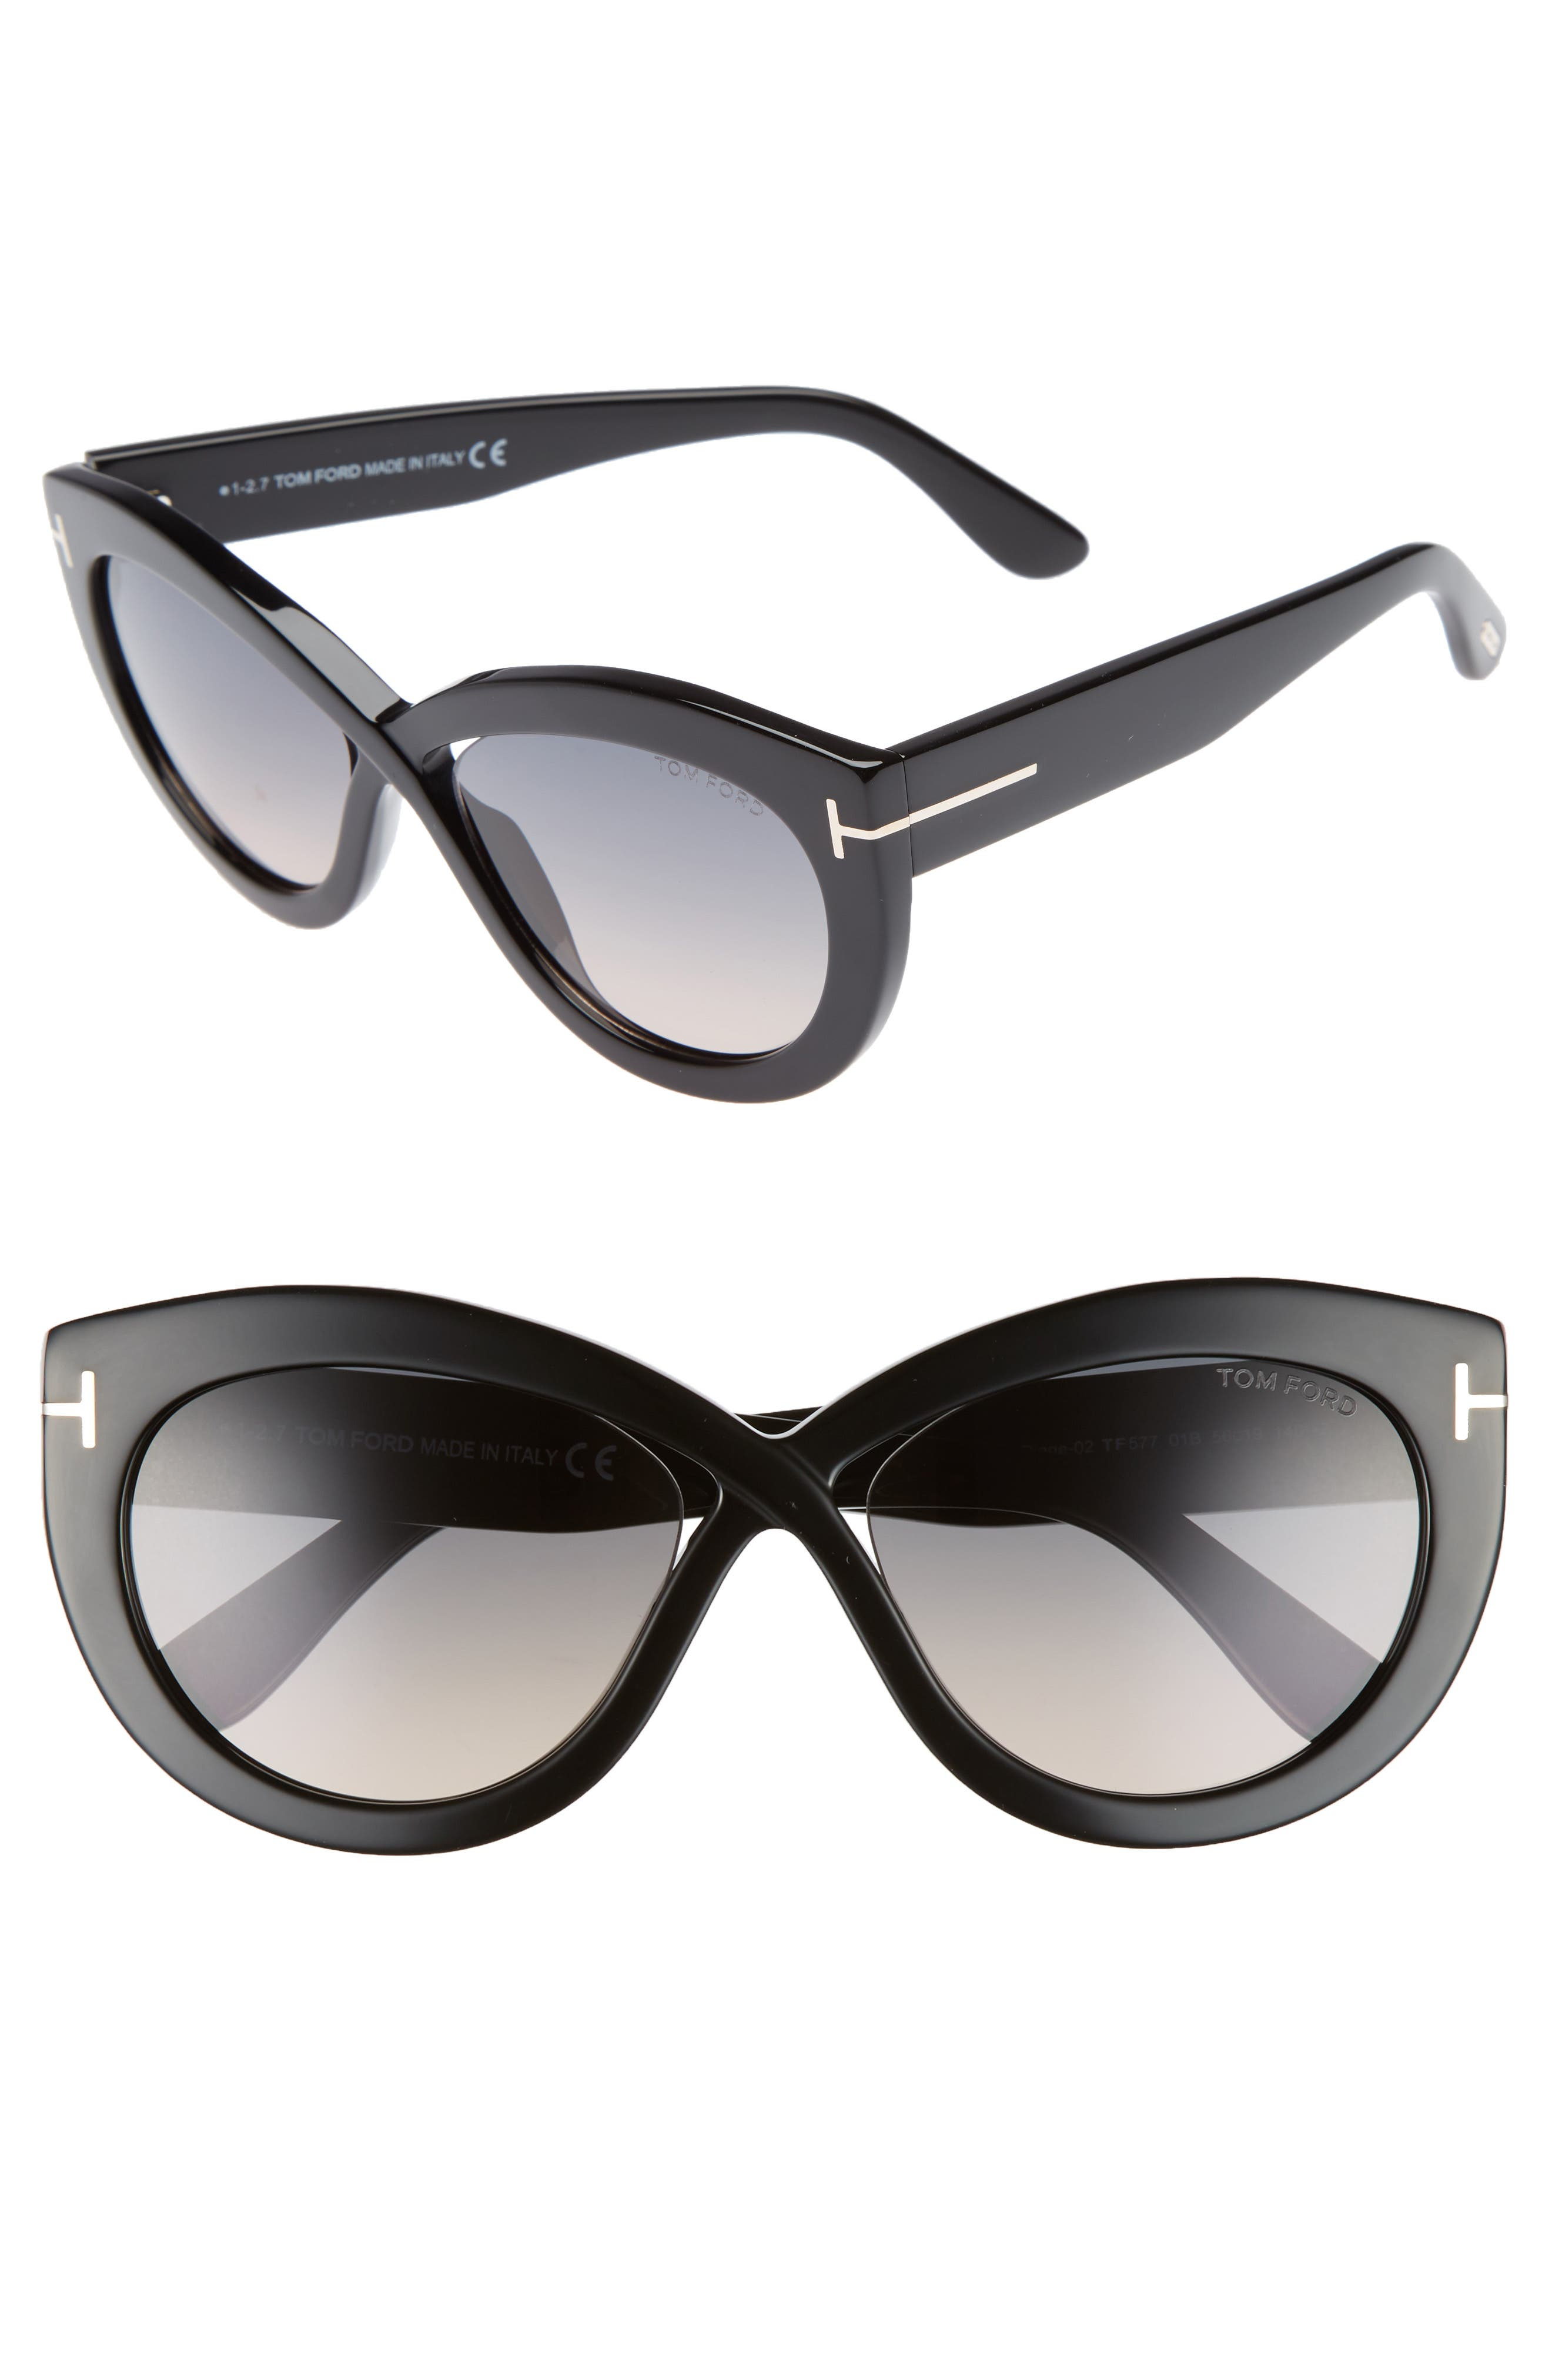 ac01d33451 TOM FORD DIANE 56MM BUTTERFLY SUNGLASSES - BLACK  GRADIENT SMOKE ...